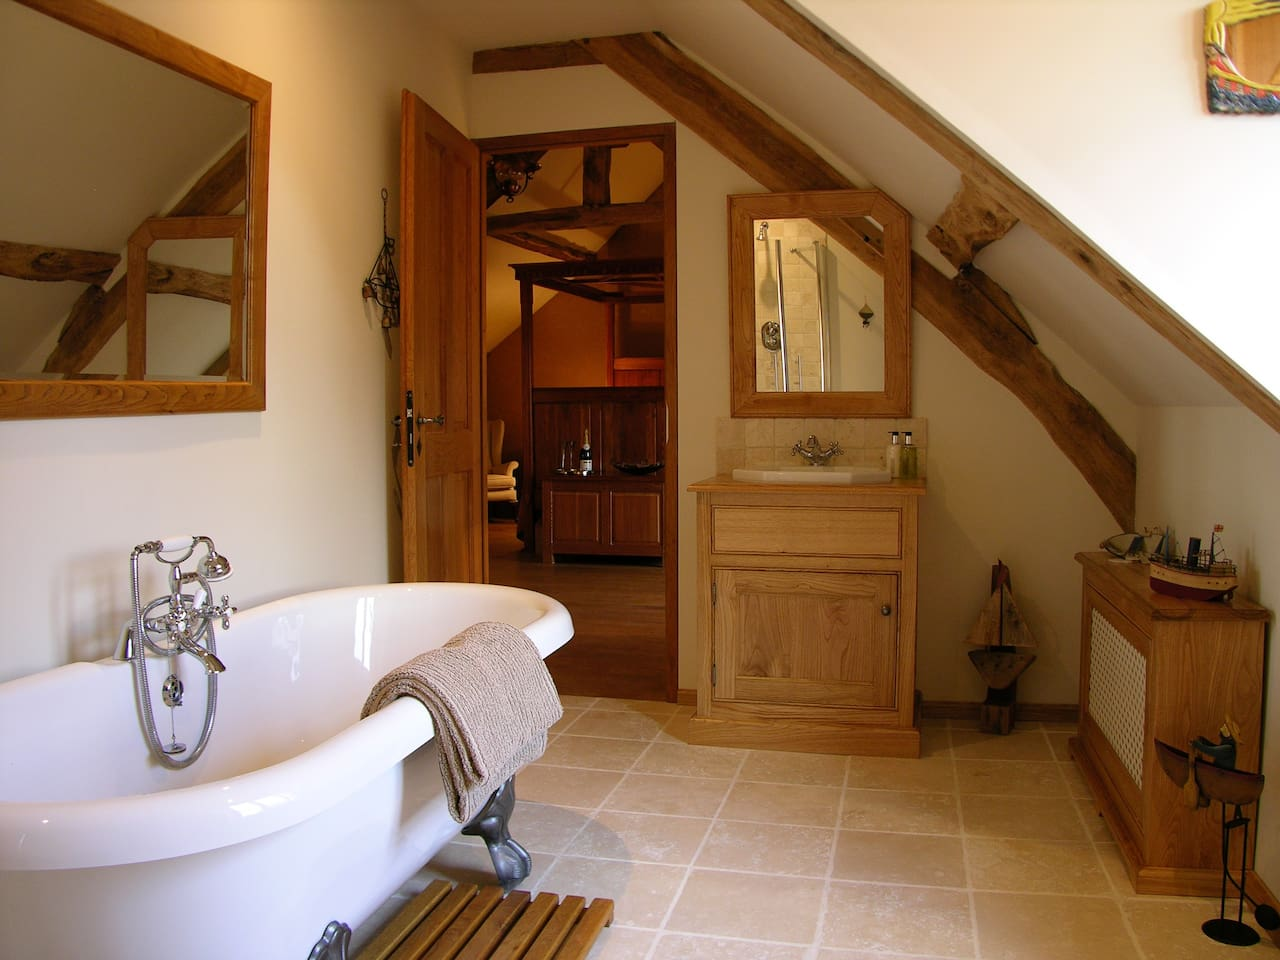 le pas cru nr le mont saint michel houses for rent in trans la le pas cru nr le mont saint michel houses for rent in trans la foret brittany france